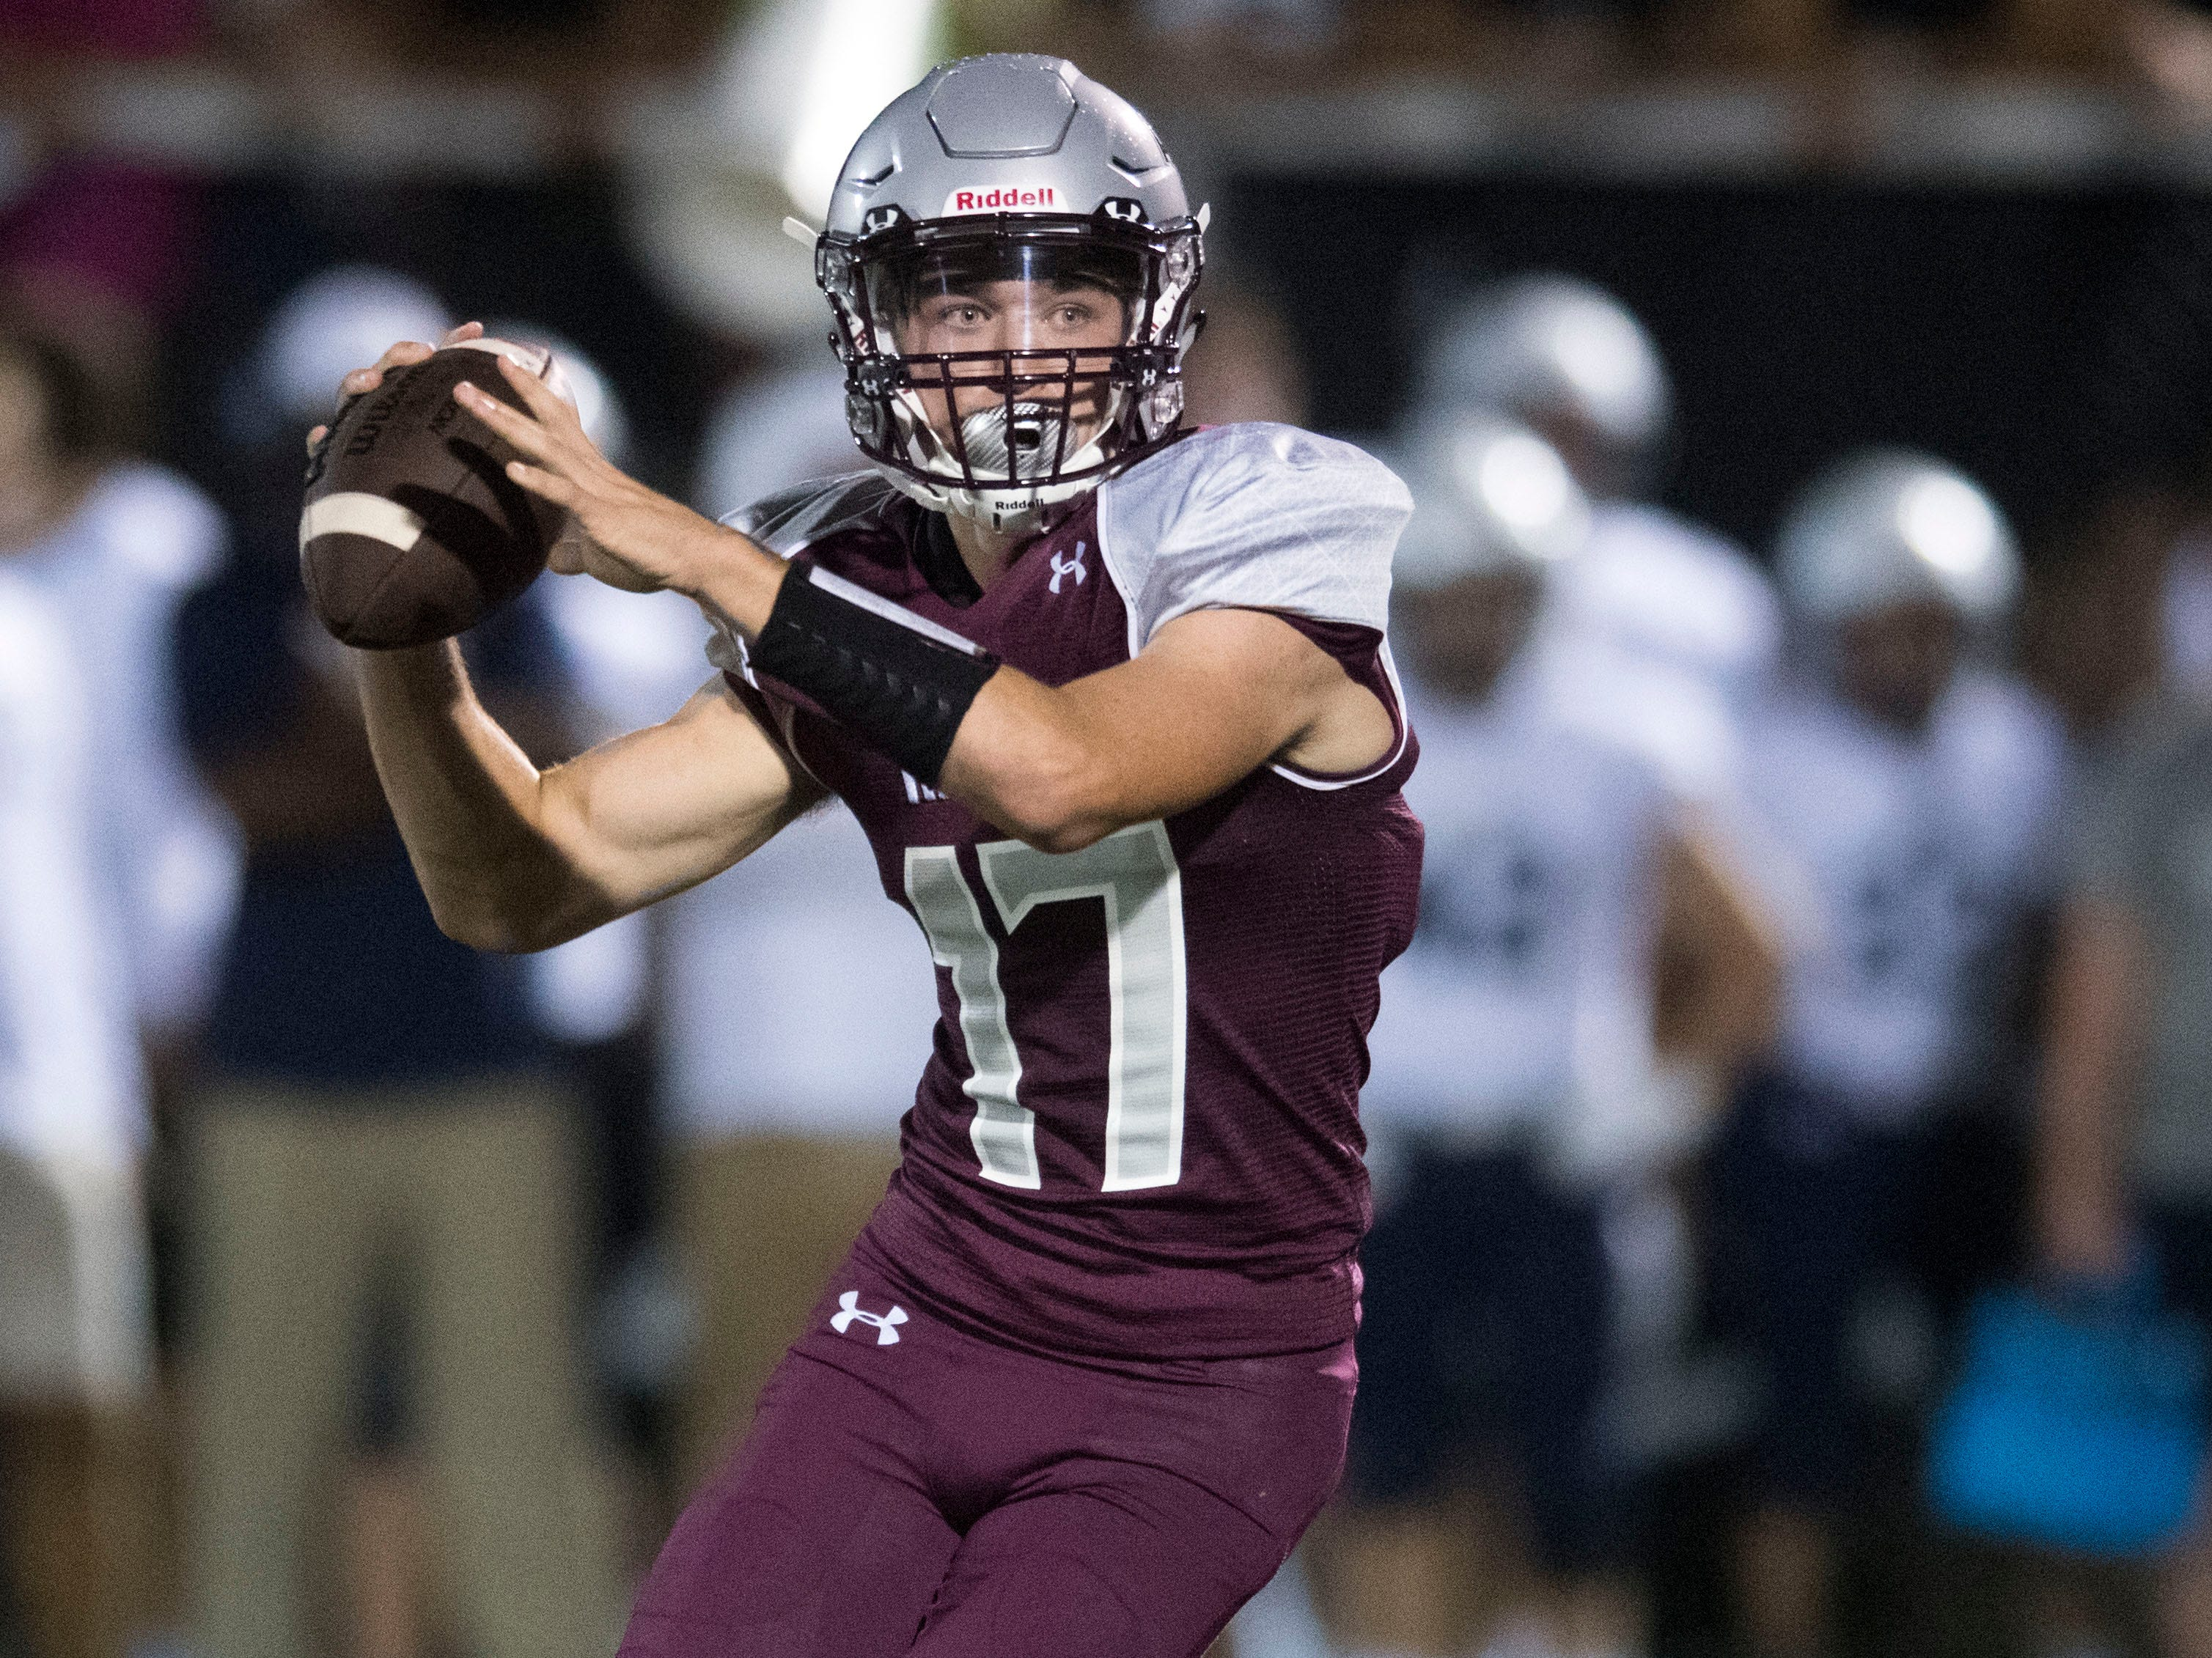 Alcoa quarterback Adam Mathews (17) sets to thrown during the football game against Grace Christian Academy on Thursday, August 16, 2018.